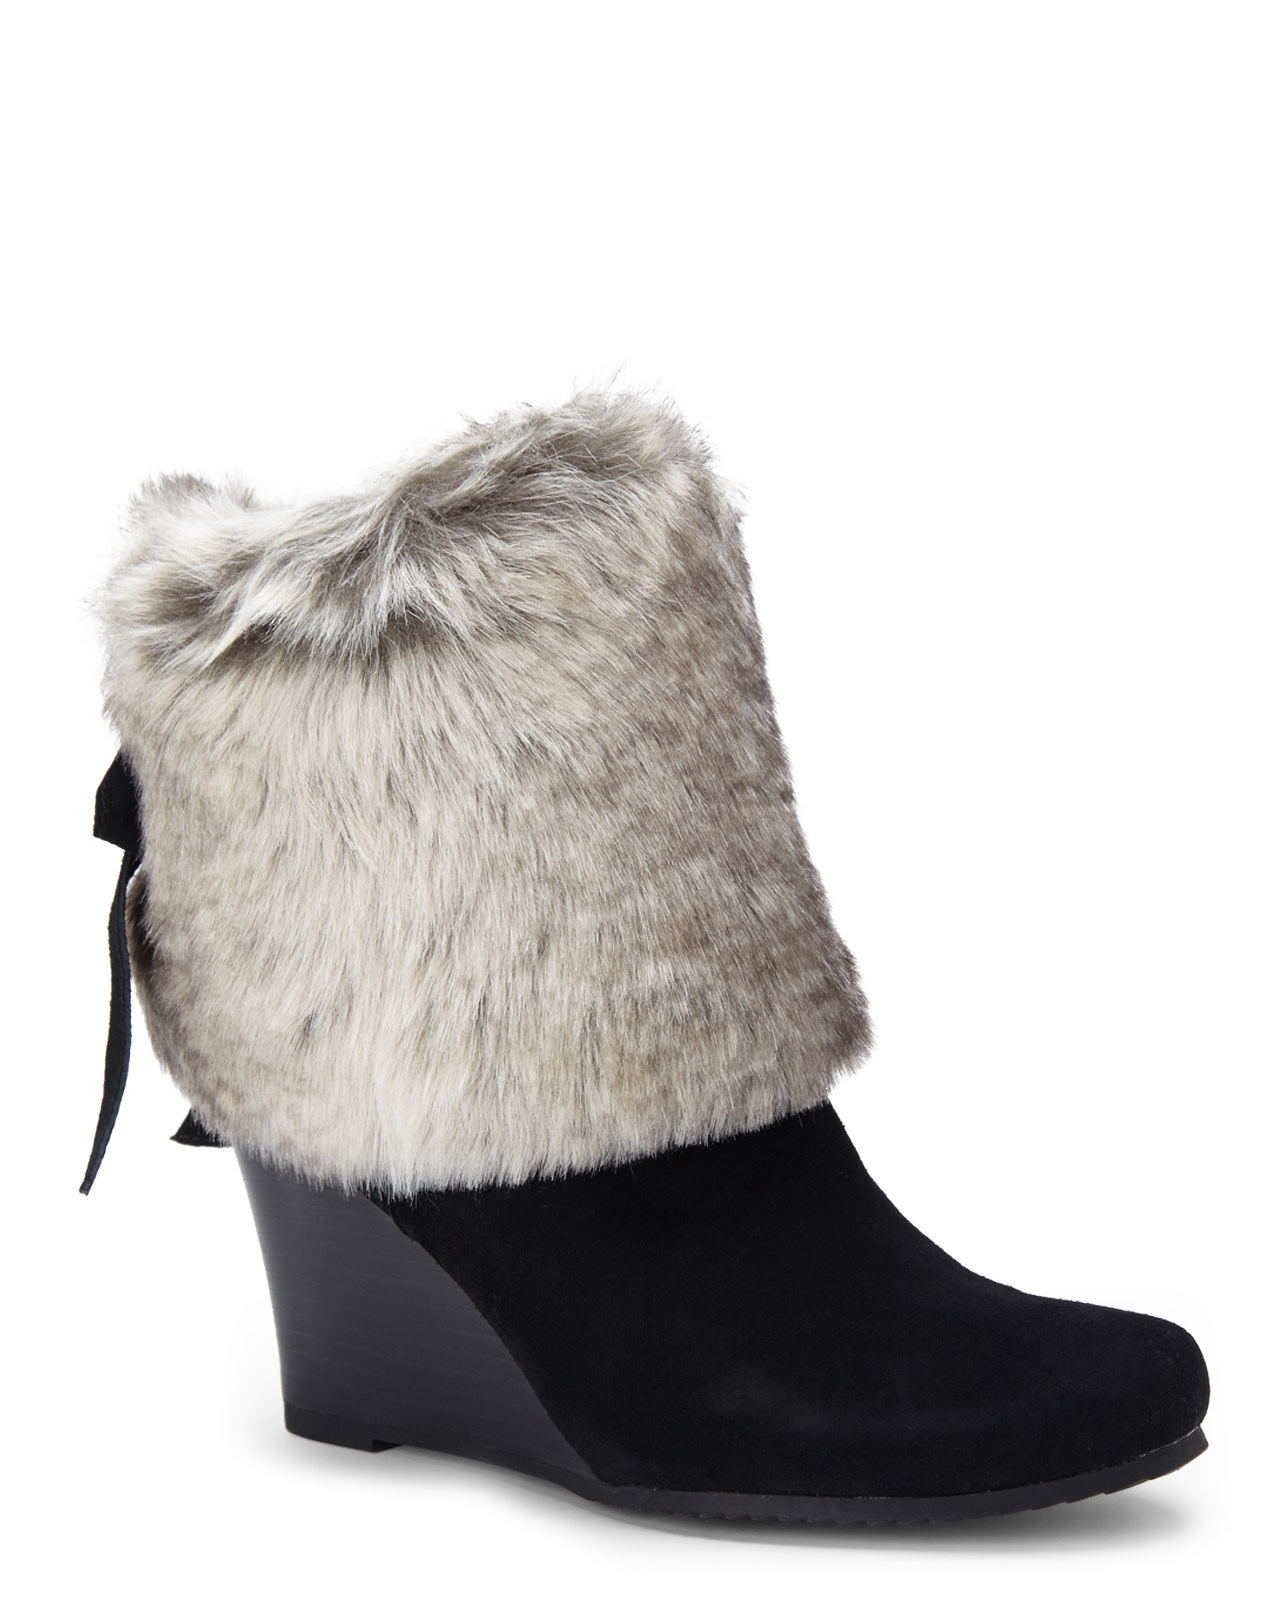 37ff15e2921 Lyst - Chinese Laundry Black Very Nice Wedge Booties in Black